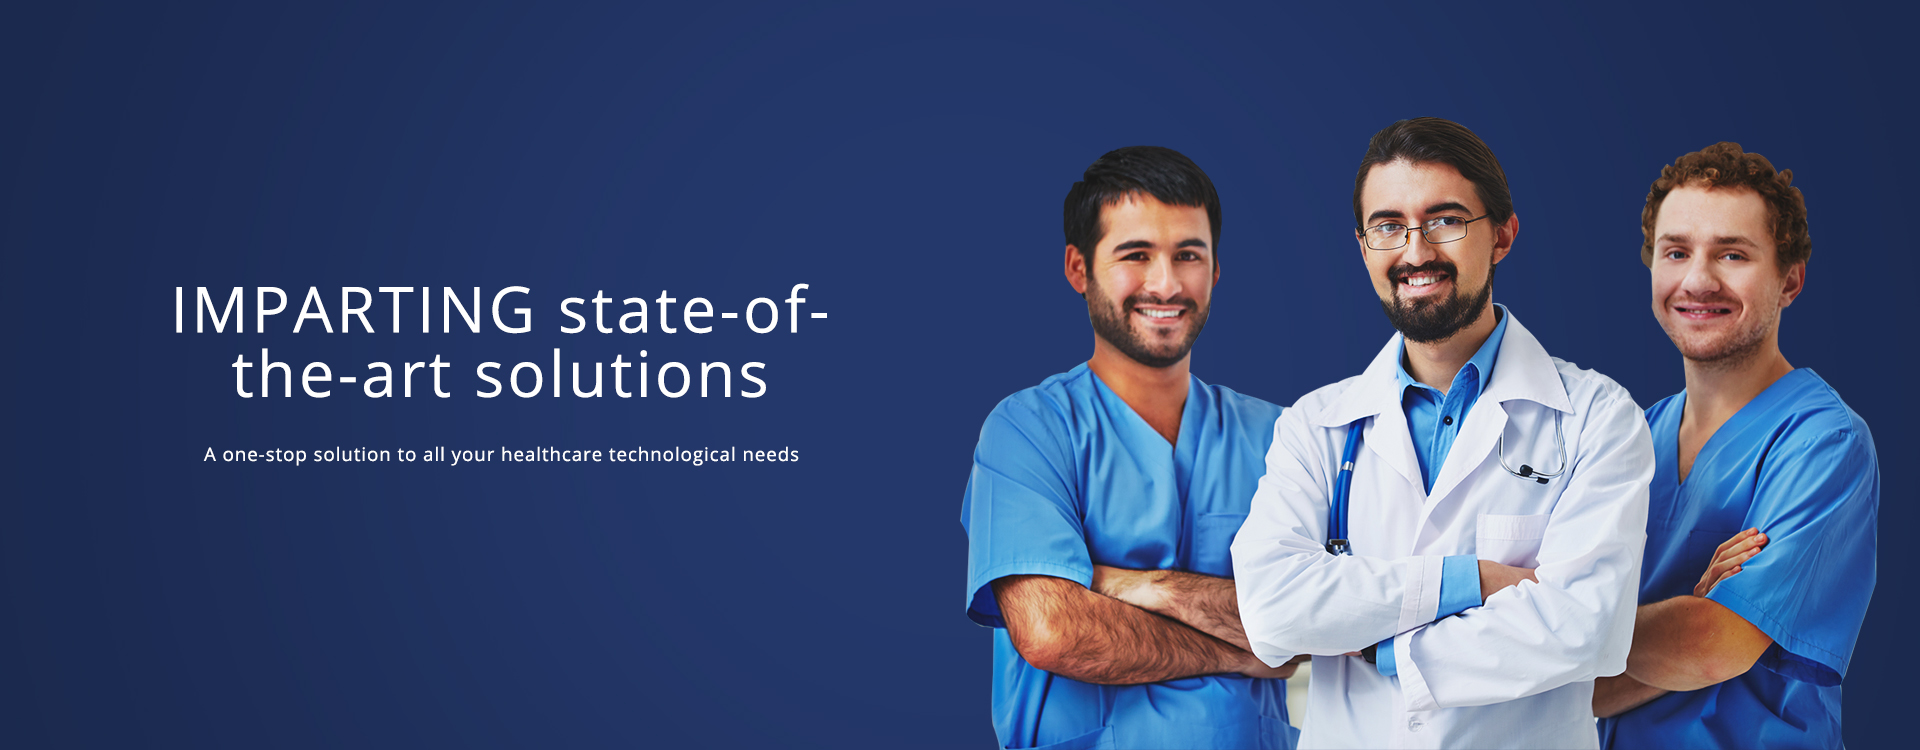 Healthcare Technology Company